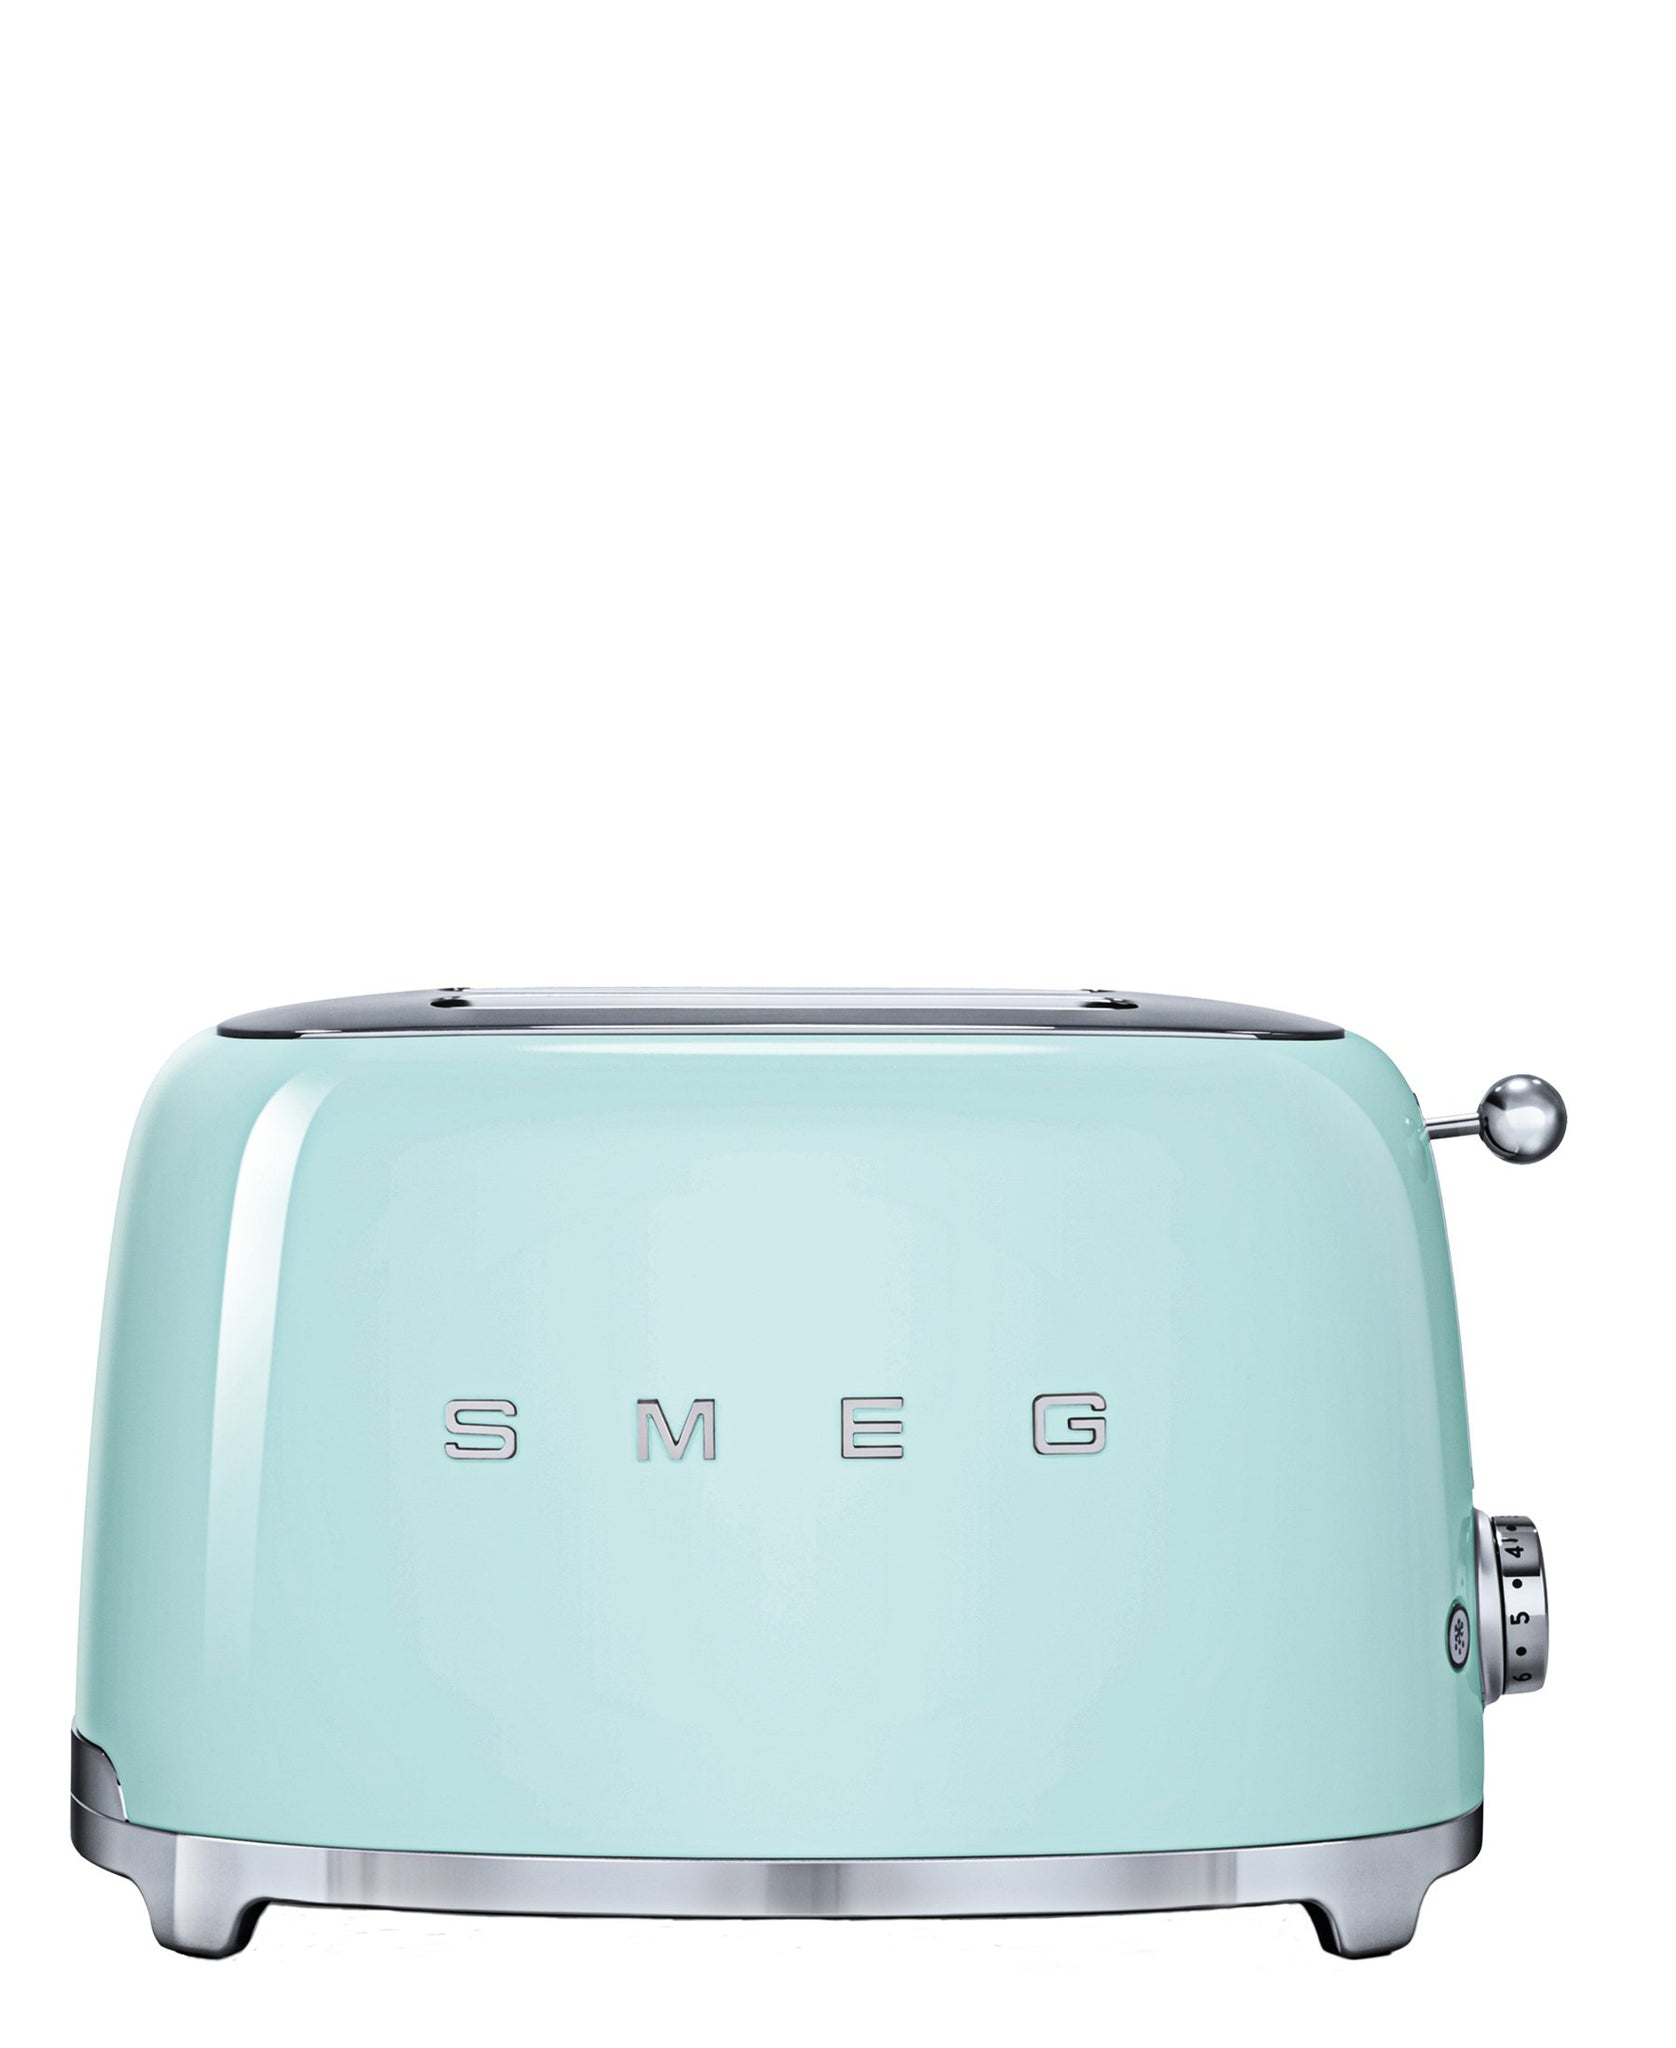 Smeg 4 Slice Toaster - Green